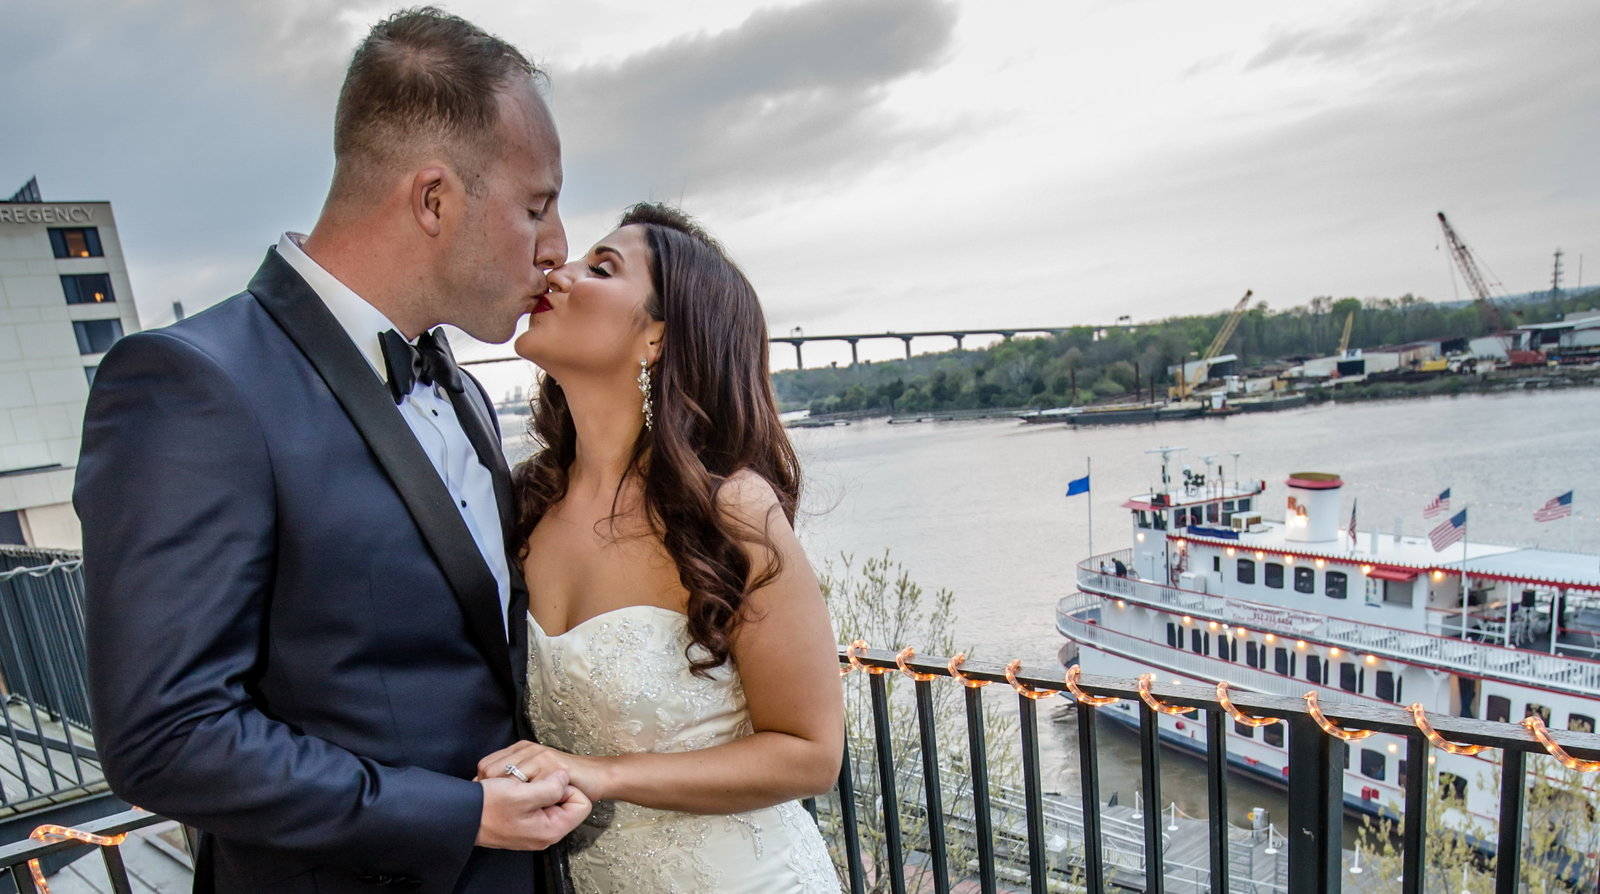 Savannah Wedding Photographer, Tiffany & Josh, Bobbi Brinkman Photography